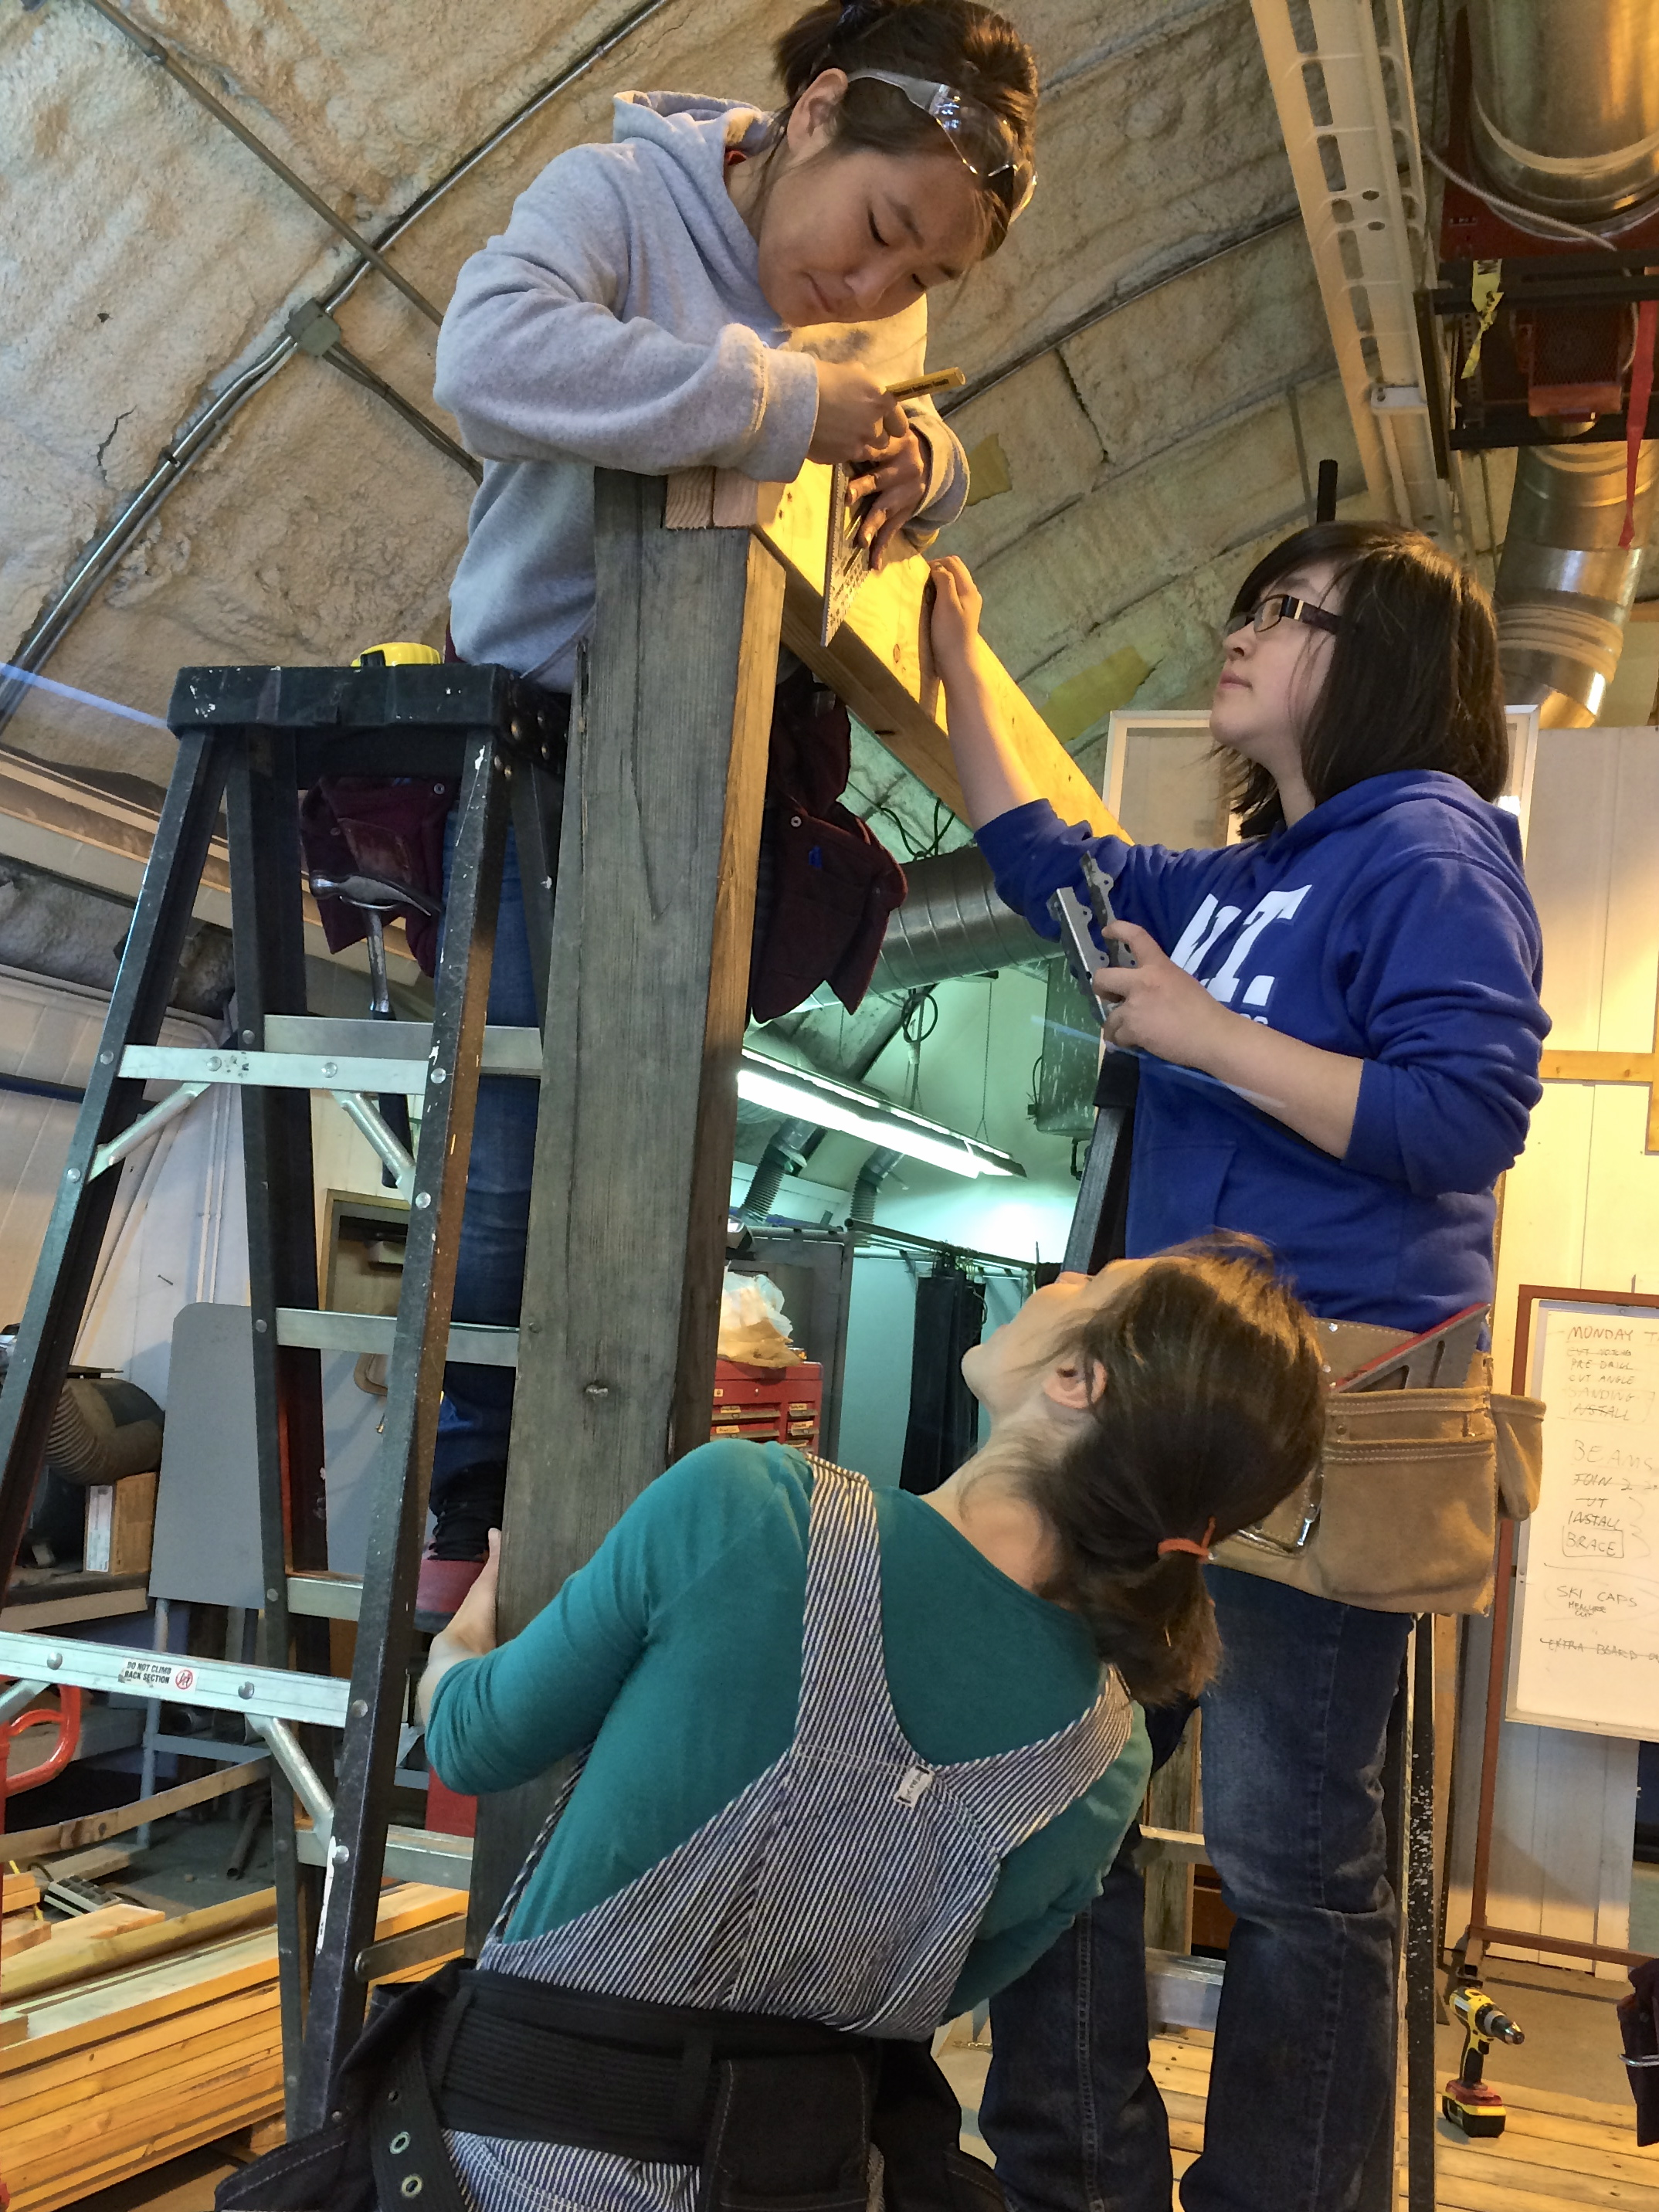 Misha and Kirsten get ready to install a joist hanger.